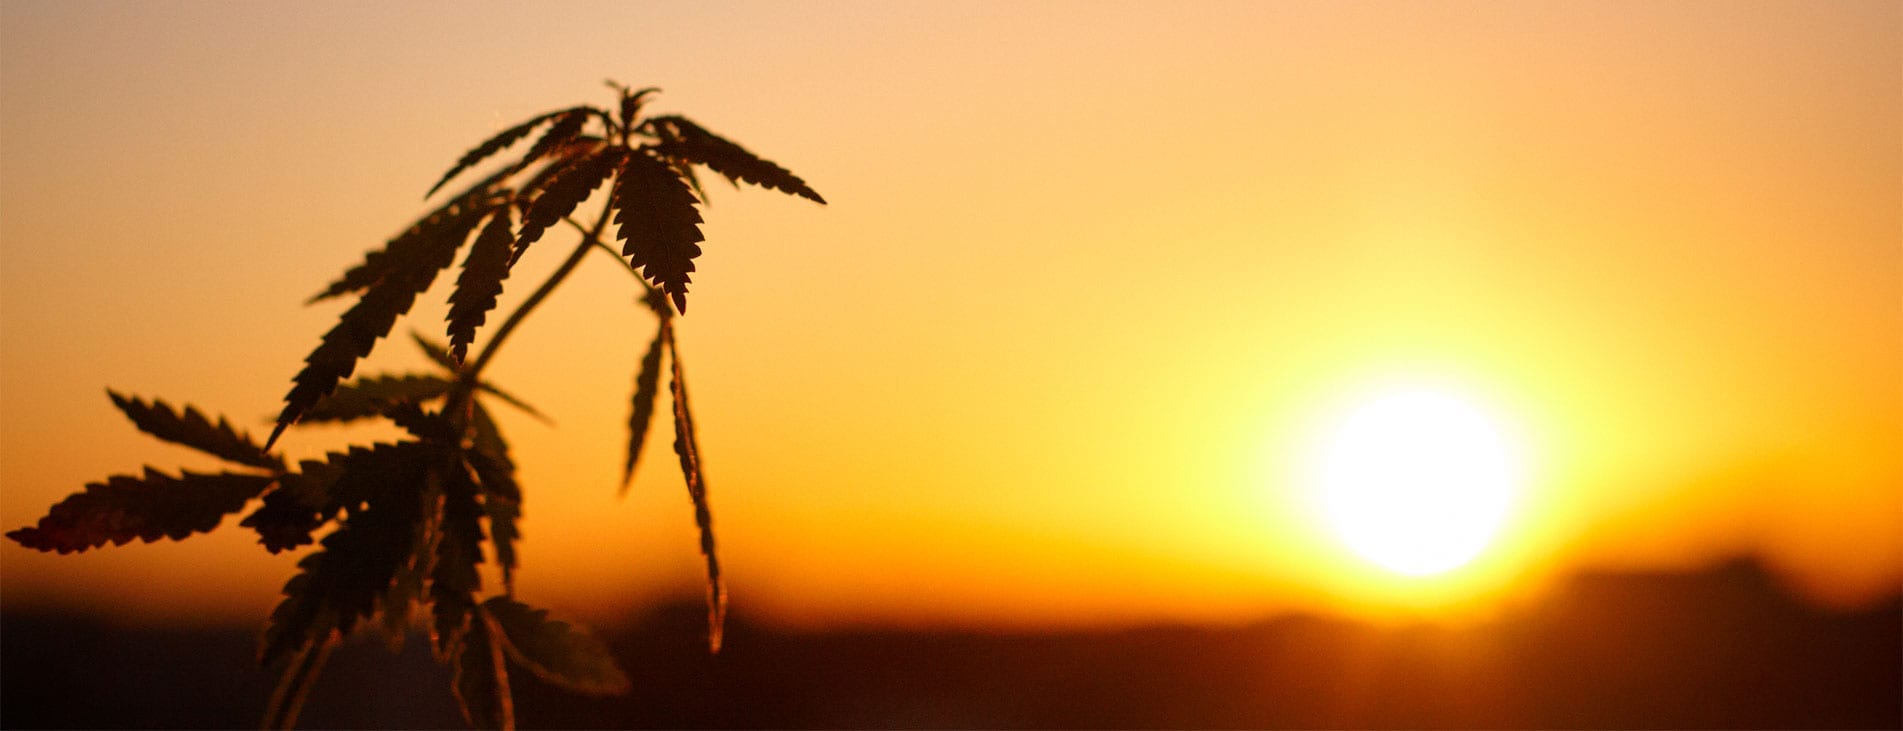 sunset with a close up of a hemp plant